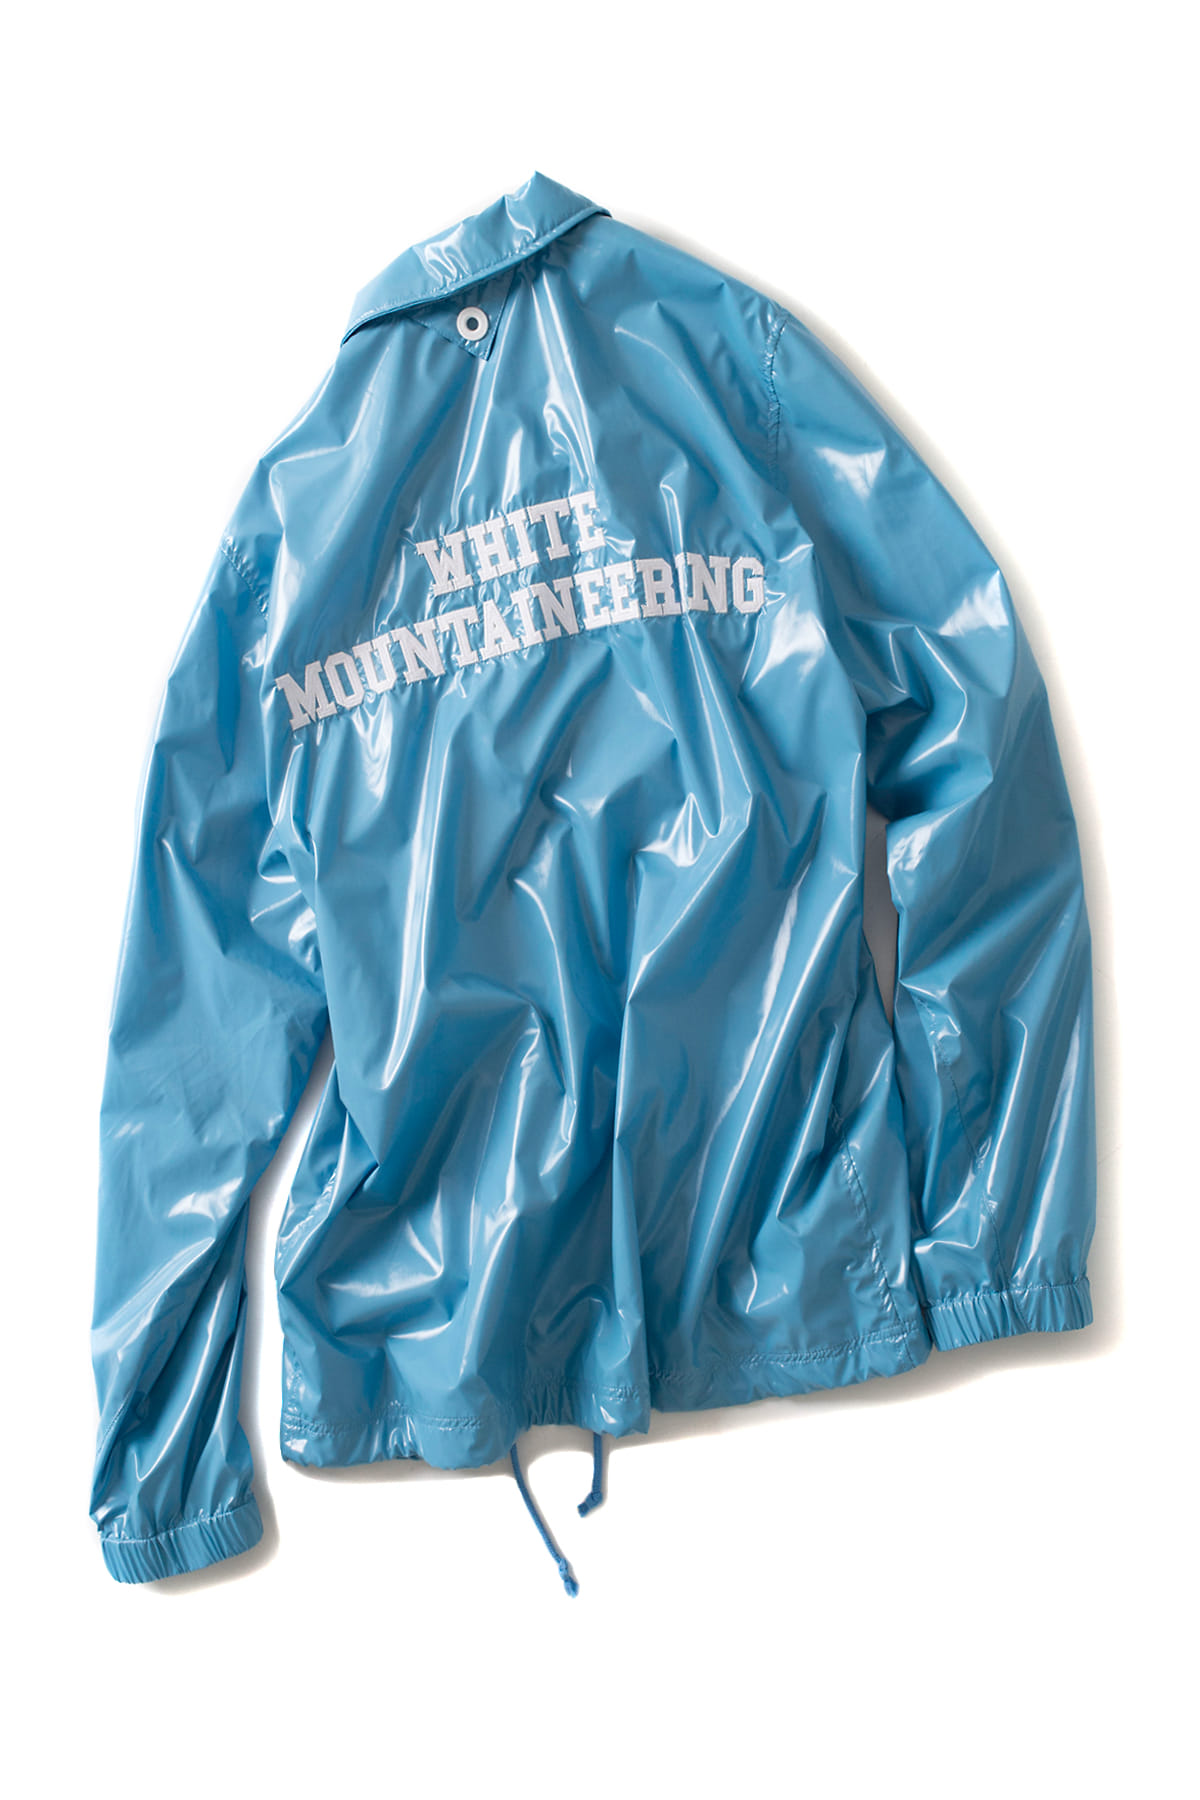 WHITE MOUNTAINEERING : Corted Nylon Coach Jacket (Sax)